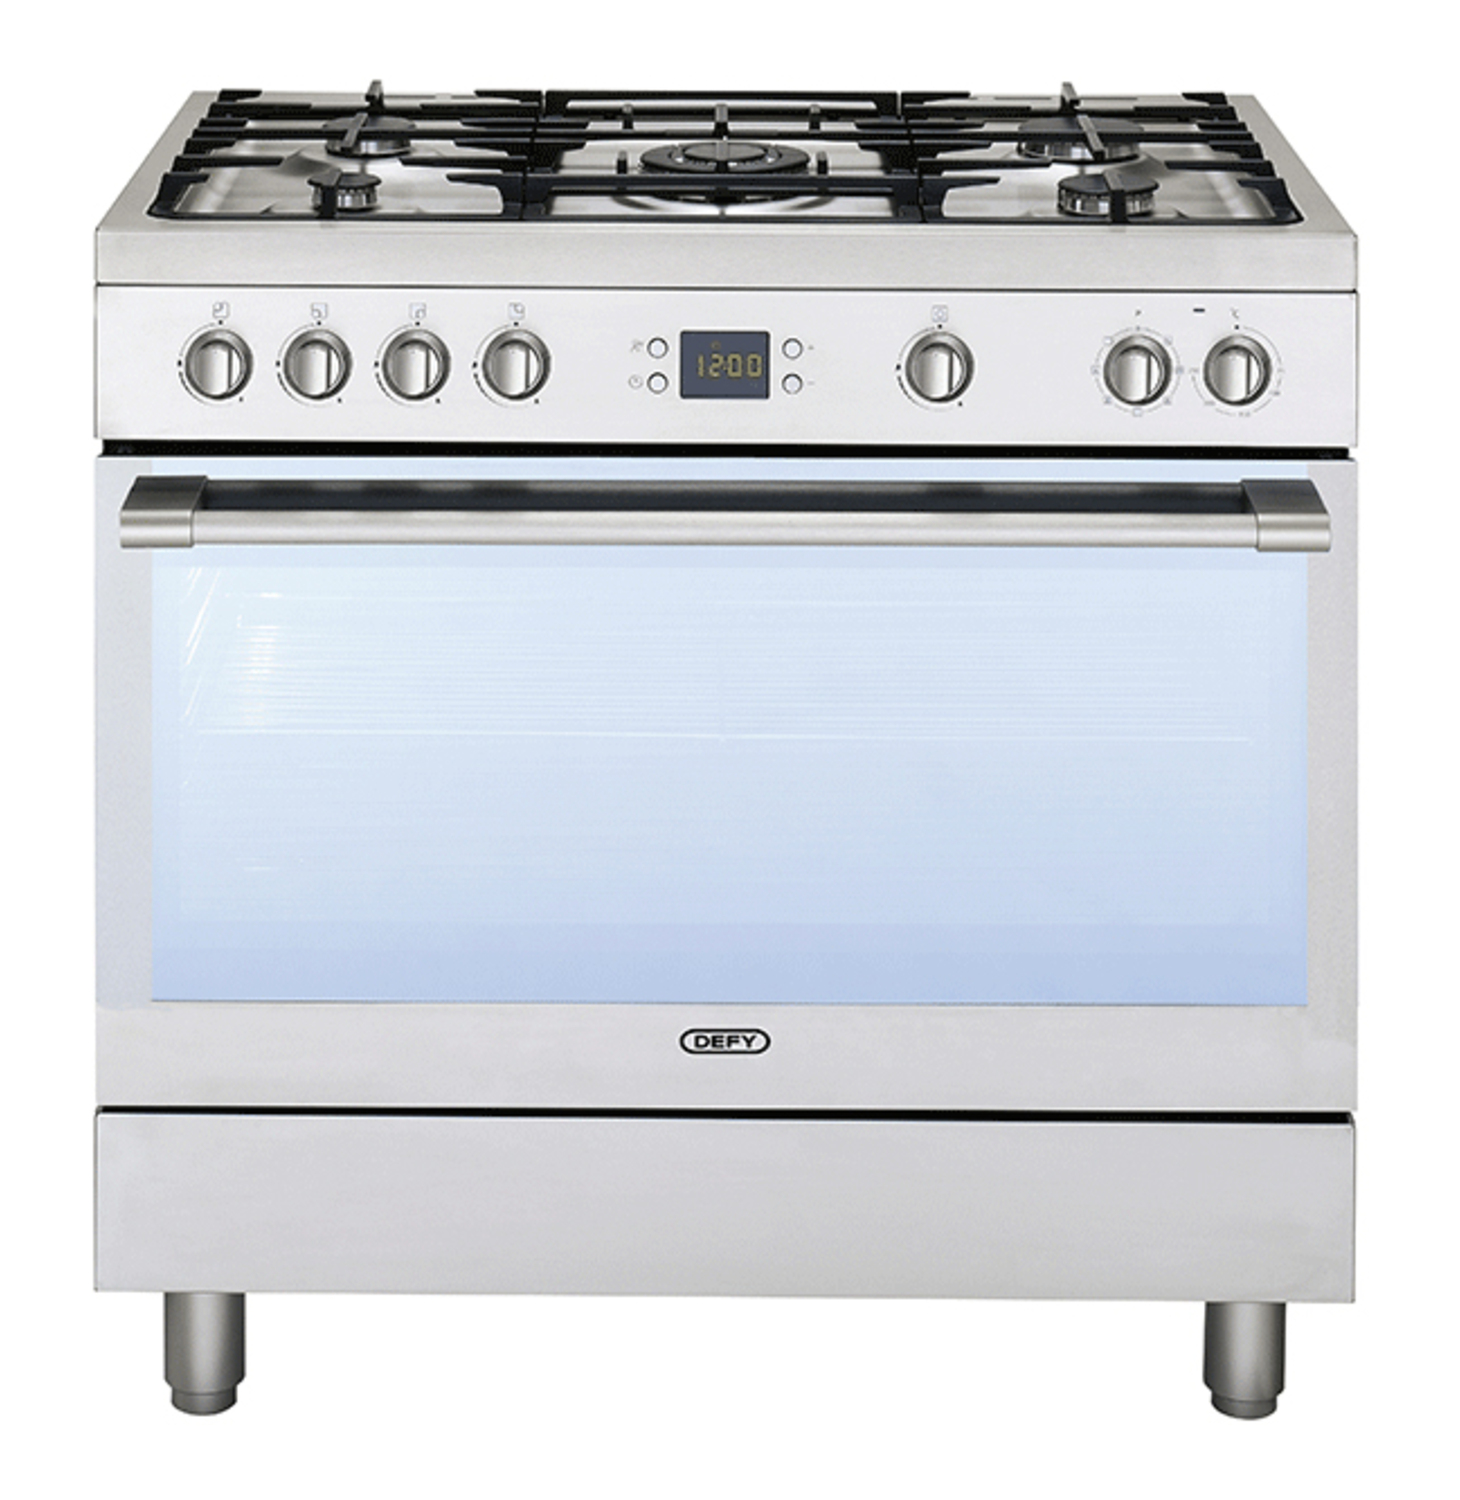 SAVE BIG ON DEFY 900MM 5 BURNER GAS ELECTRIC STOVE STAINLESS STEEL